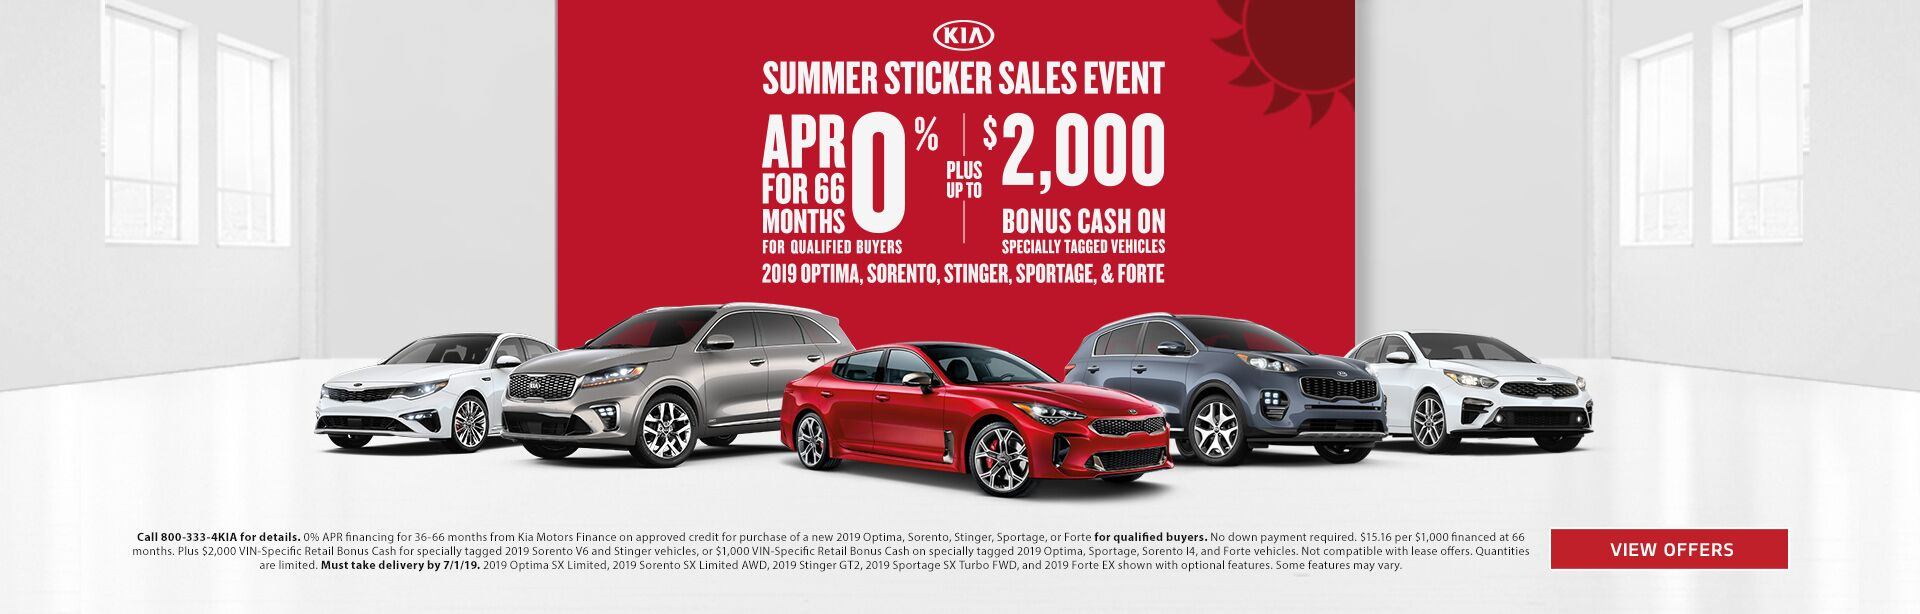 Kia Dealership Moosic Pa Used Cars Performance Kia